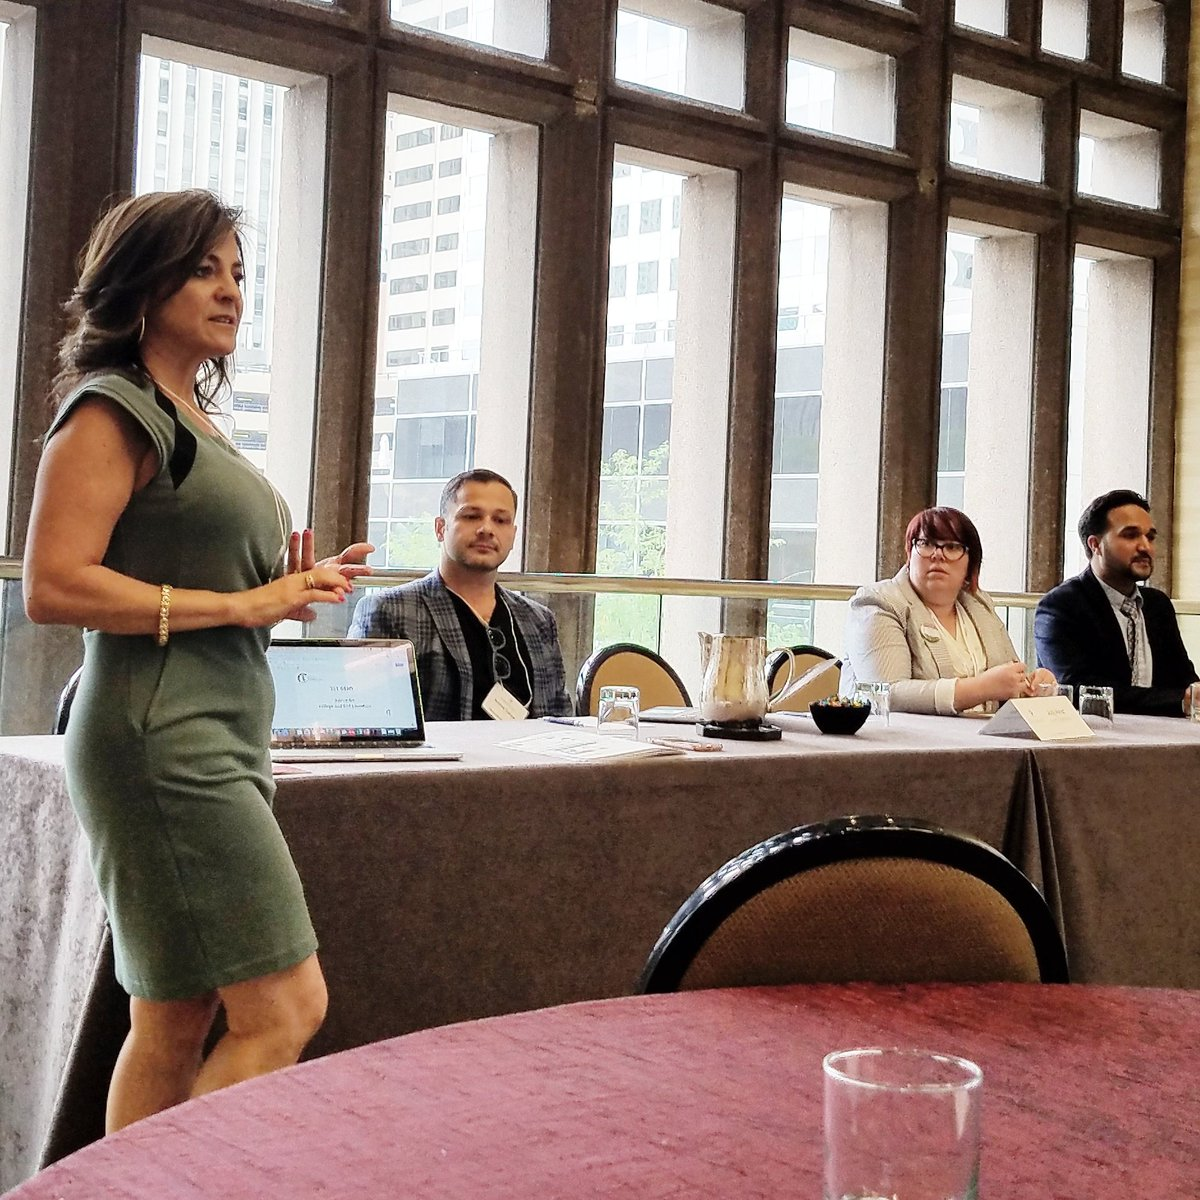 iLC talks about #firstgen students at @GlobalMindEDorg conference in #Denver #equity #access #techinclass<br>http://pic.twitter.com/Yo6kUPdcaf